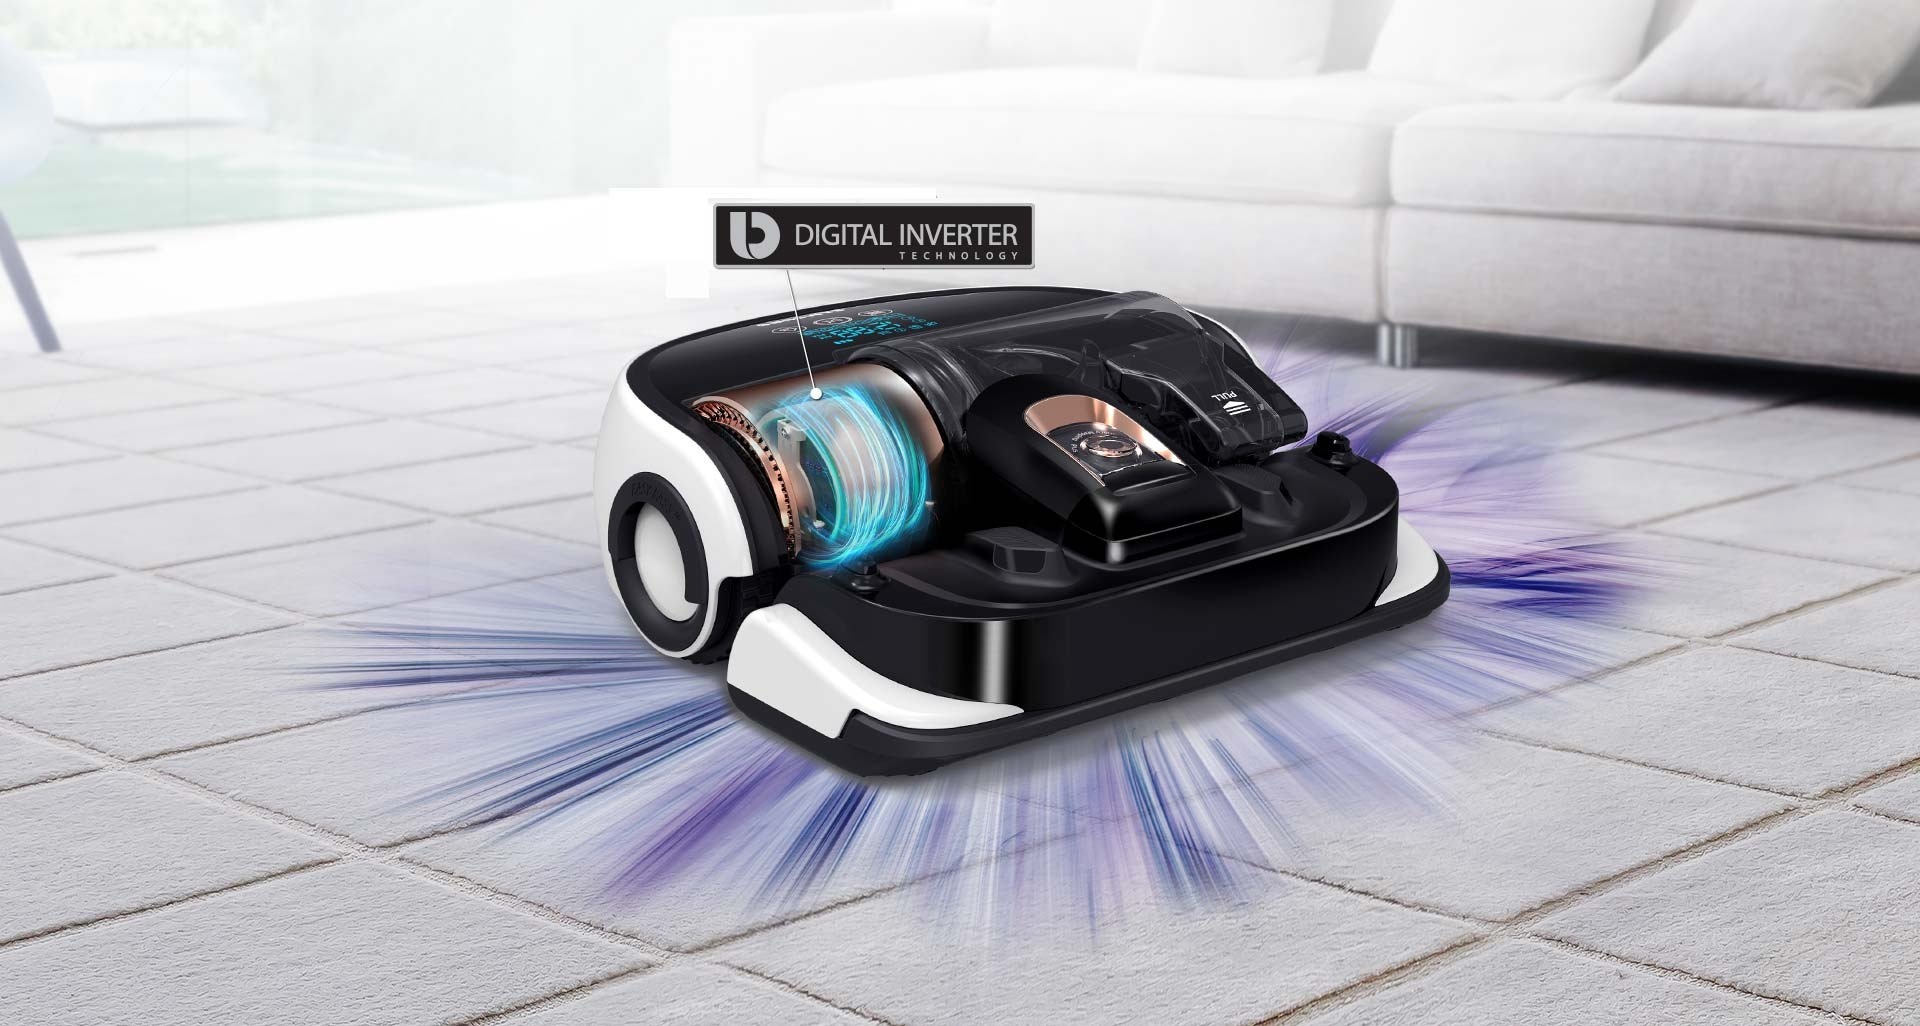 Samsung's most powerful robotic vacuum cleaner